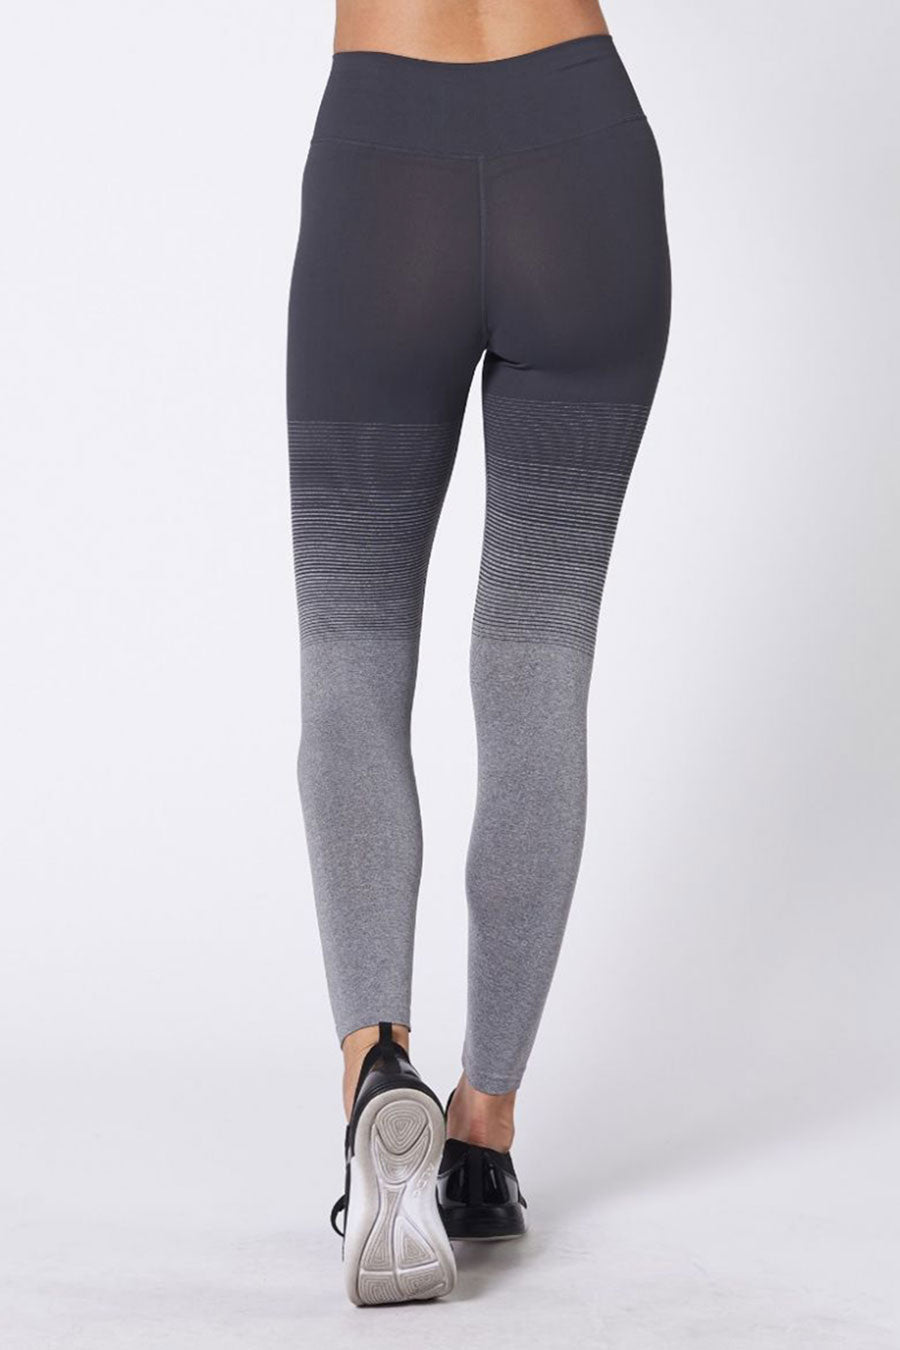 Fifty Shades Legging